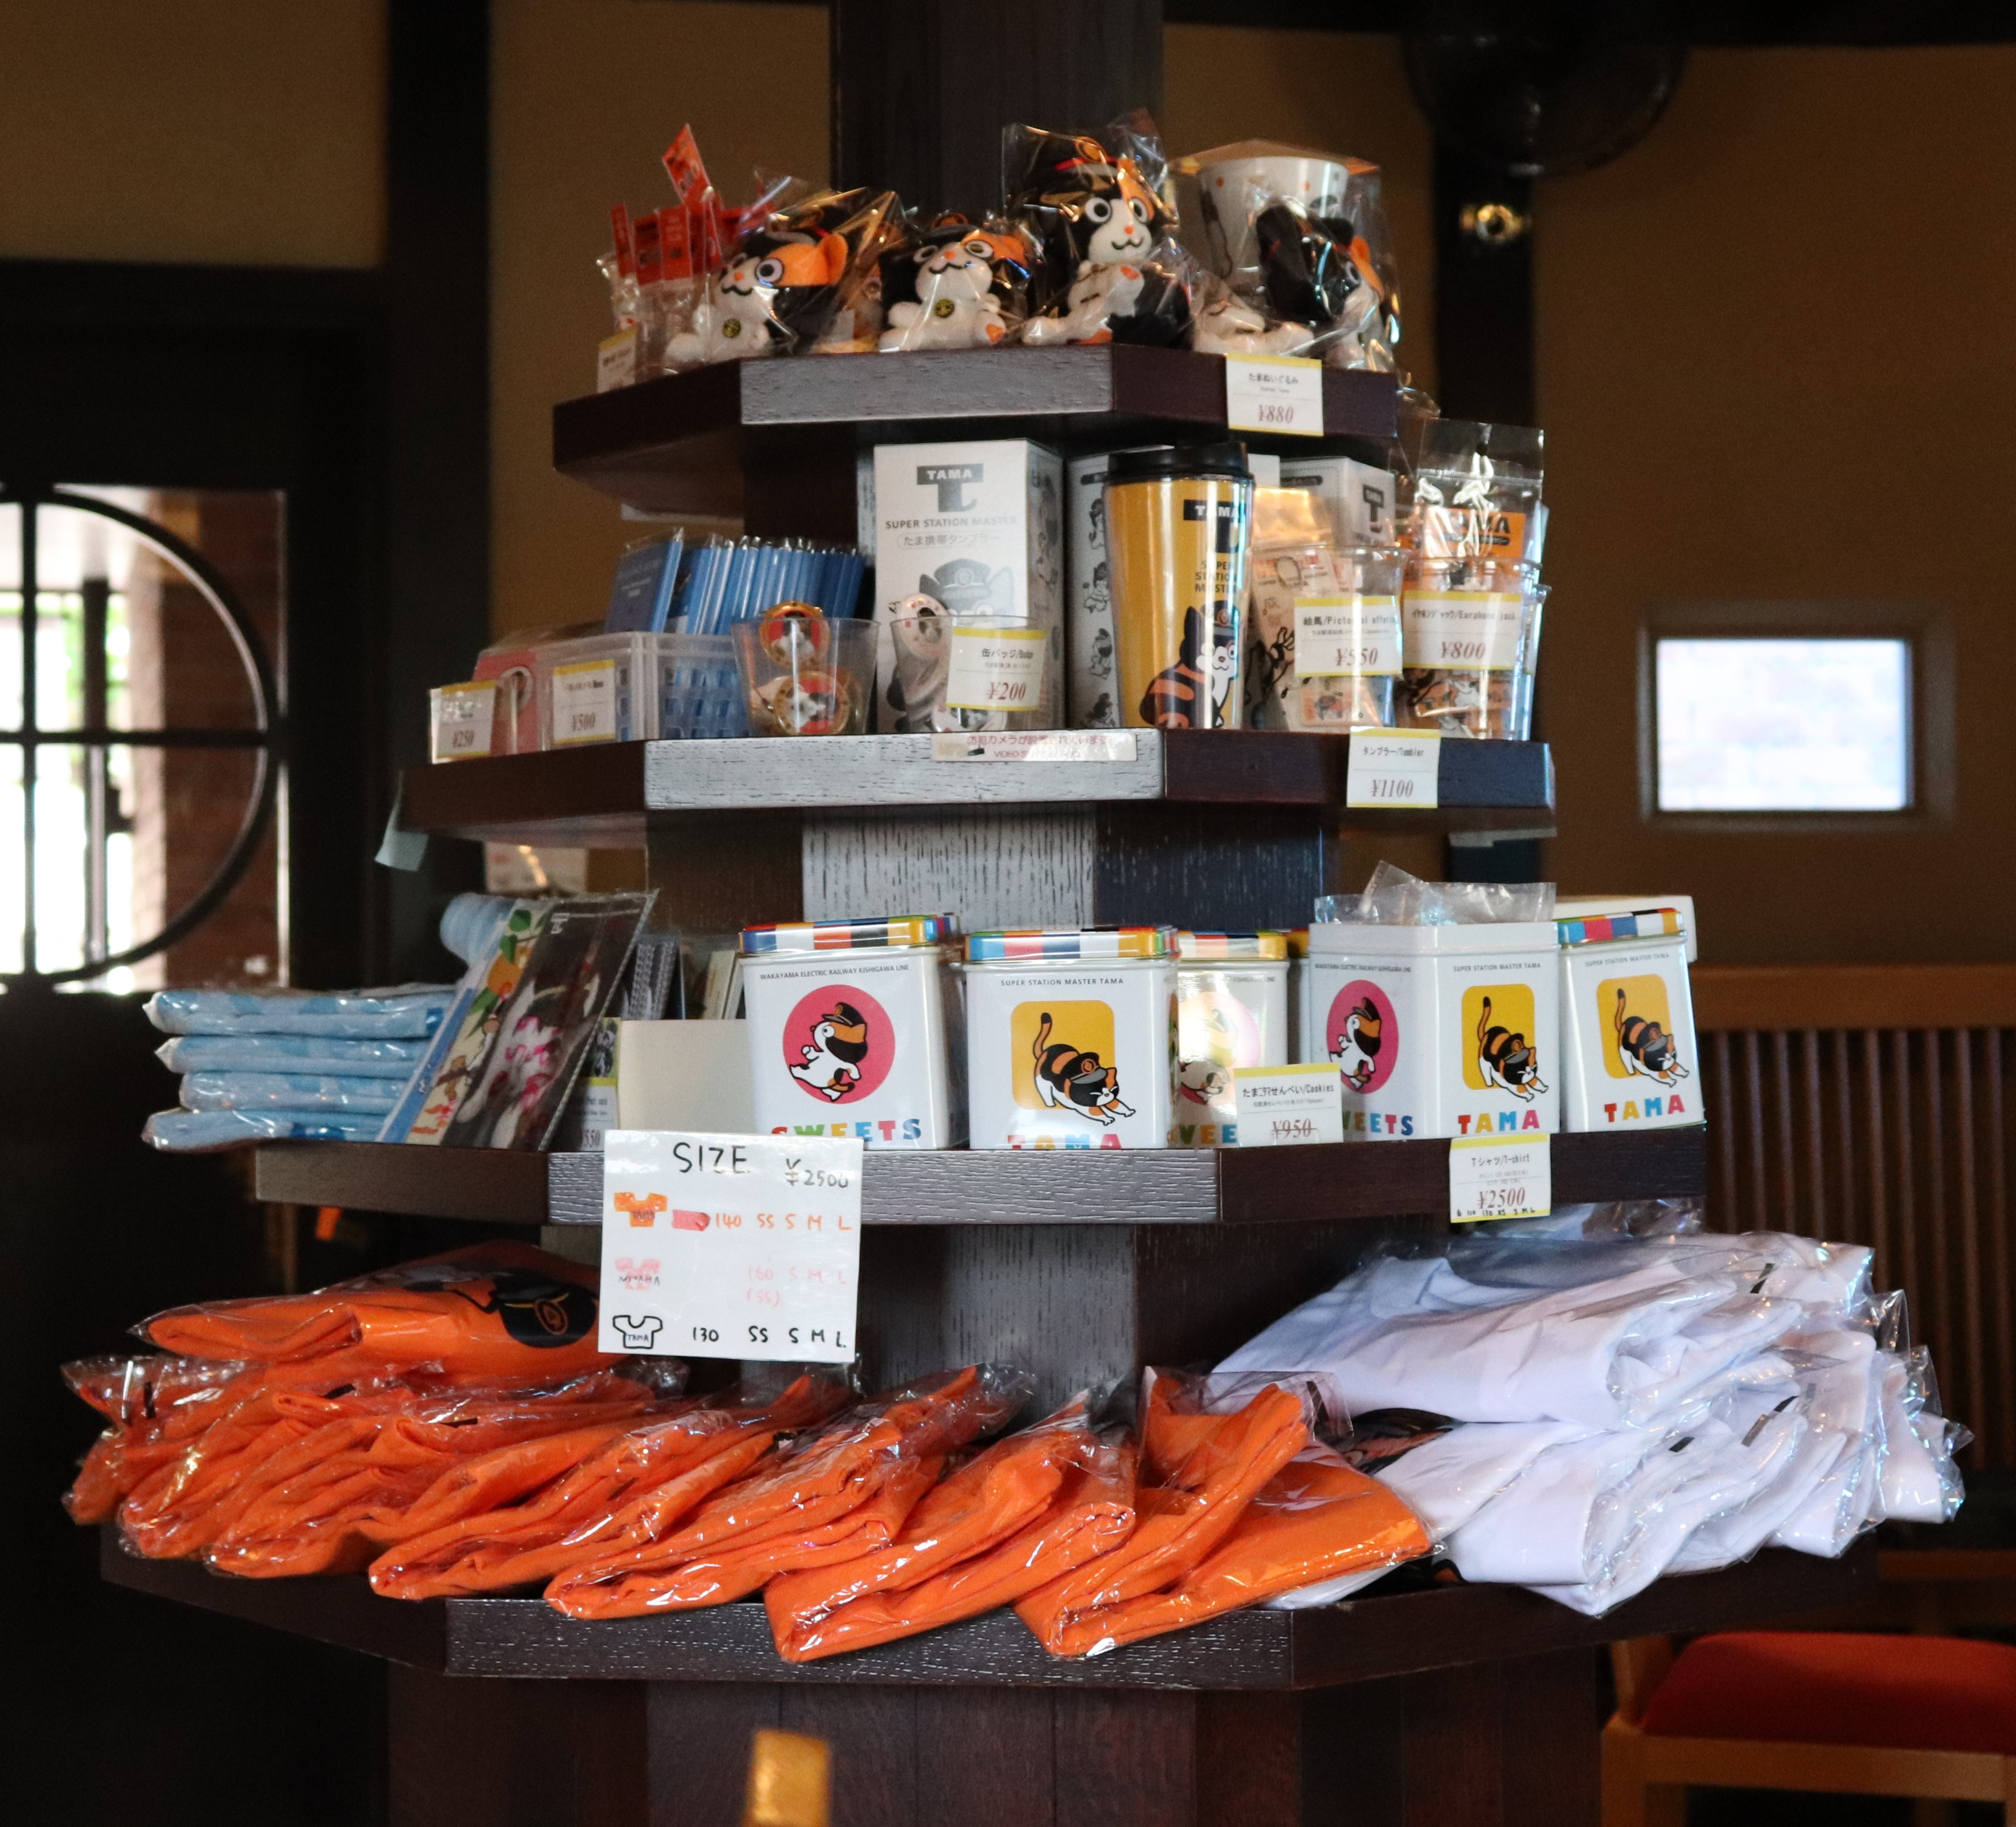 Tower of merchandise of Tama the cat and Nitama